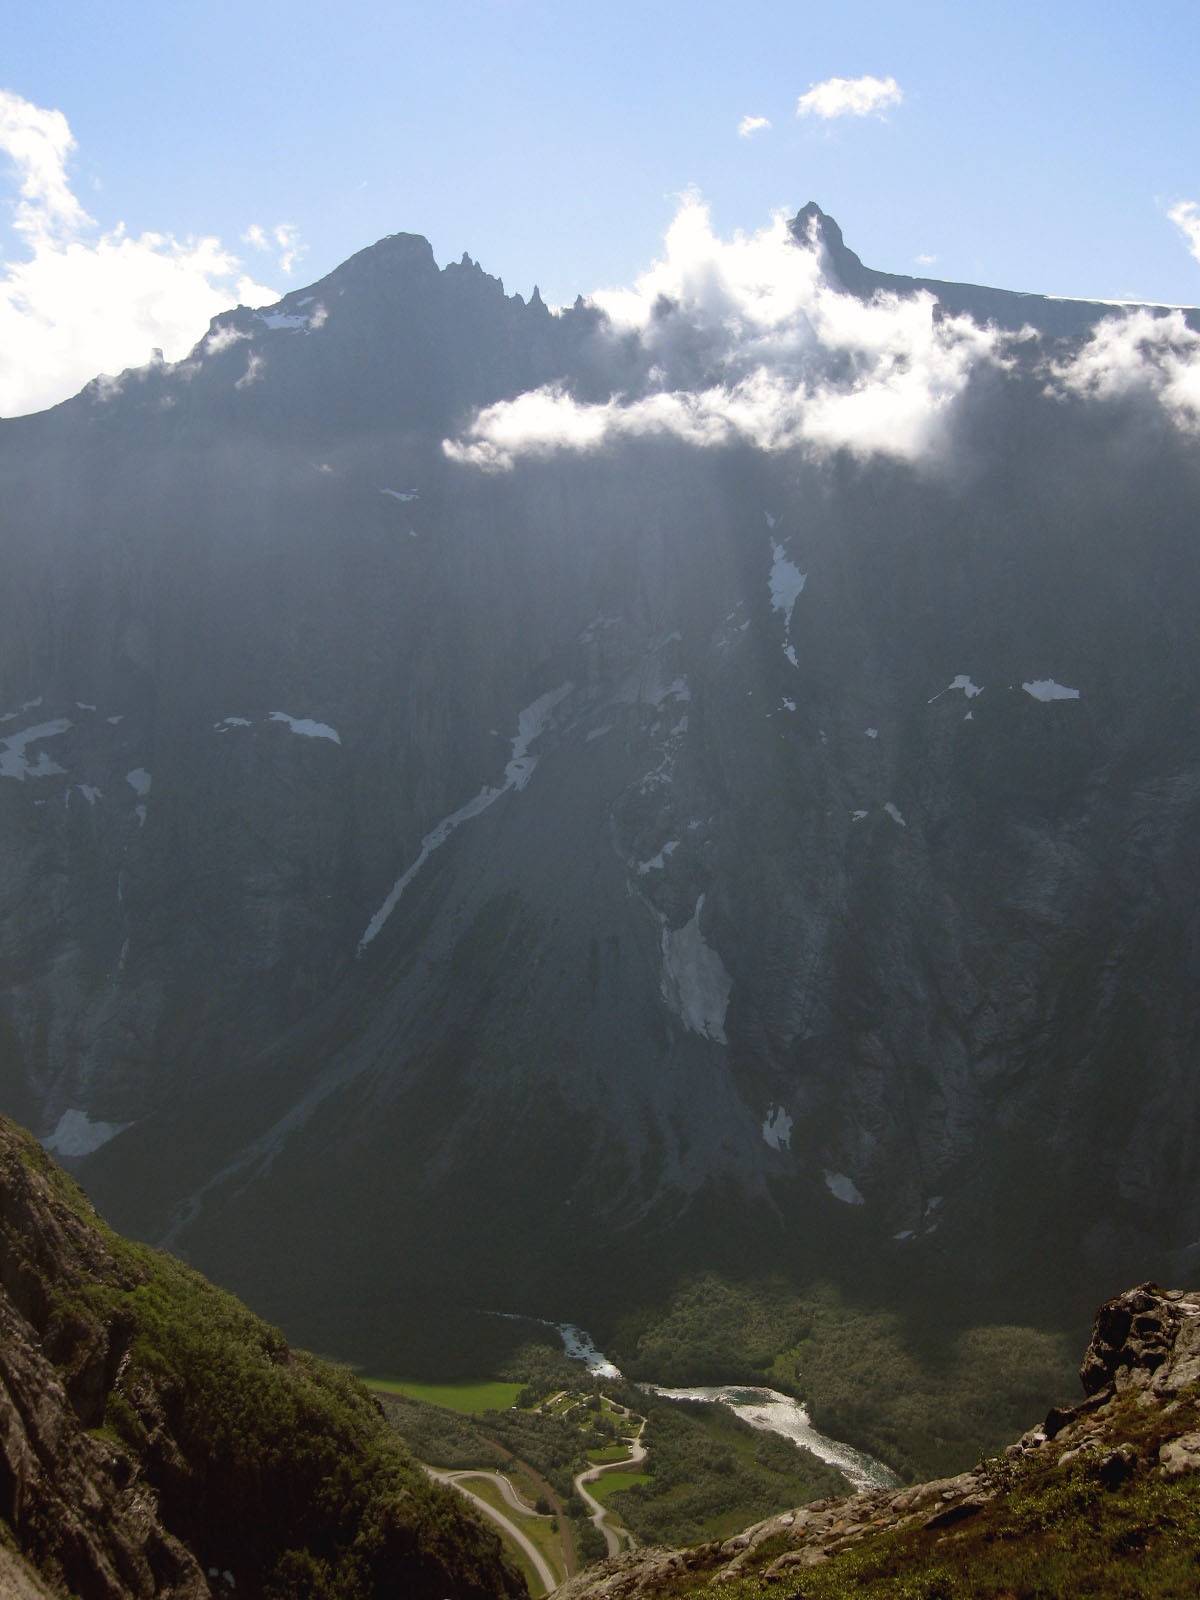 swaetshrit:  Troll Wall (Trollveggen), Norway  The Troll Wall is the tallest vertical rock face in Europe, about 1,700 metres (5,600 ft) from its base to the summit of its highest point.